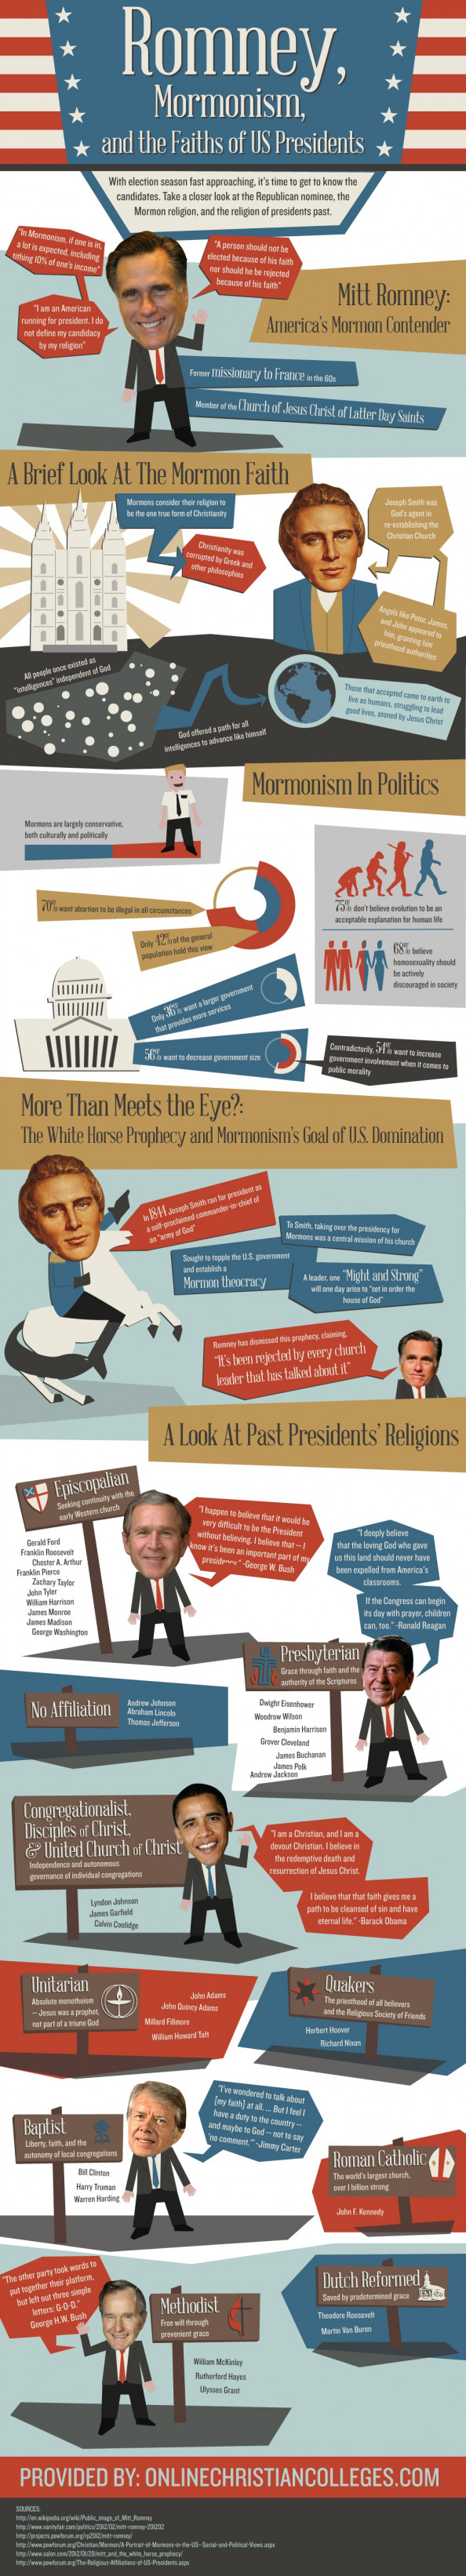 Romney, Mormonism and the Faiths of the US Presidents Infographic